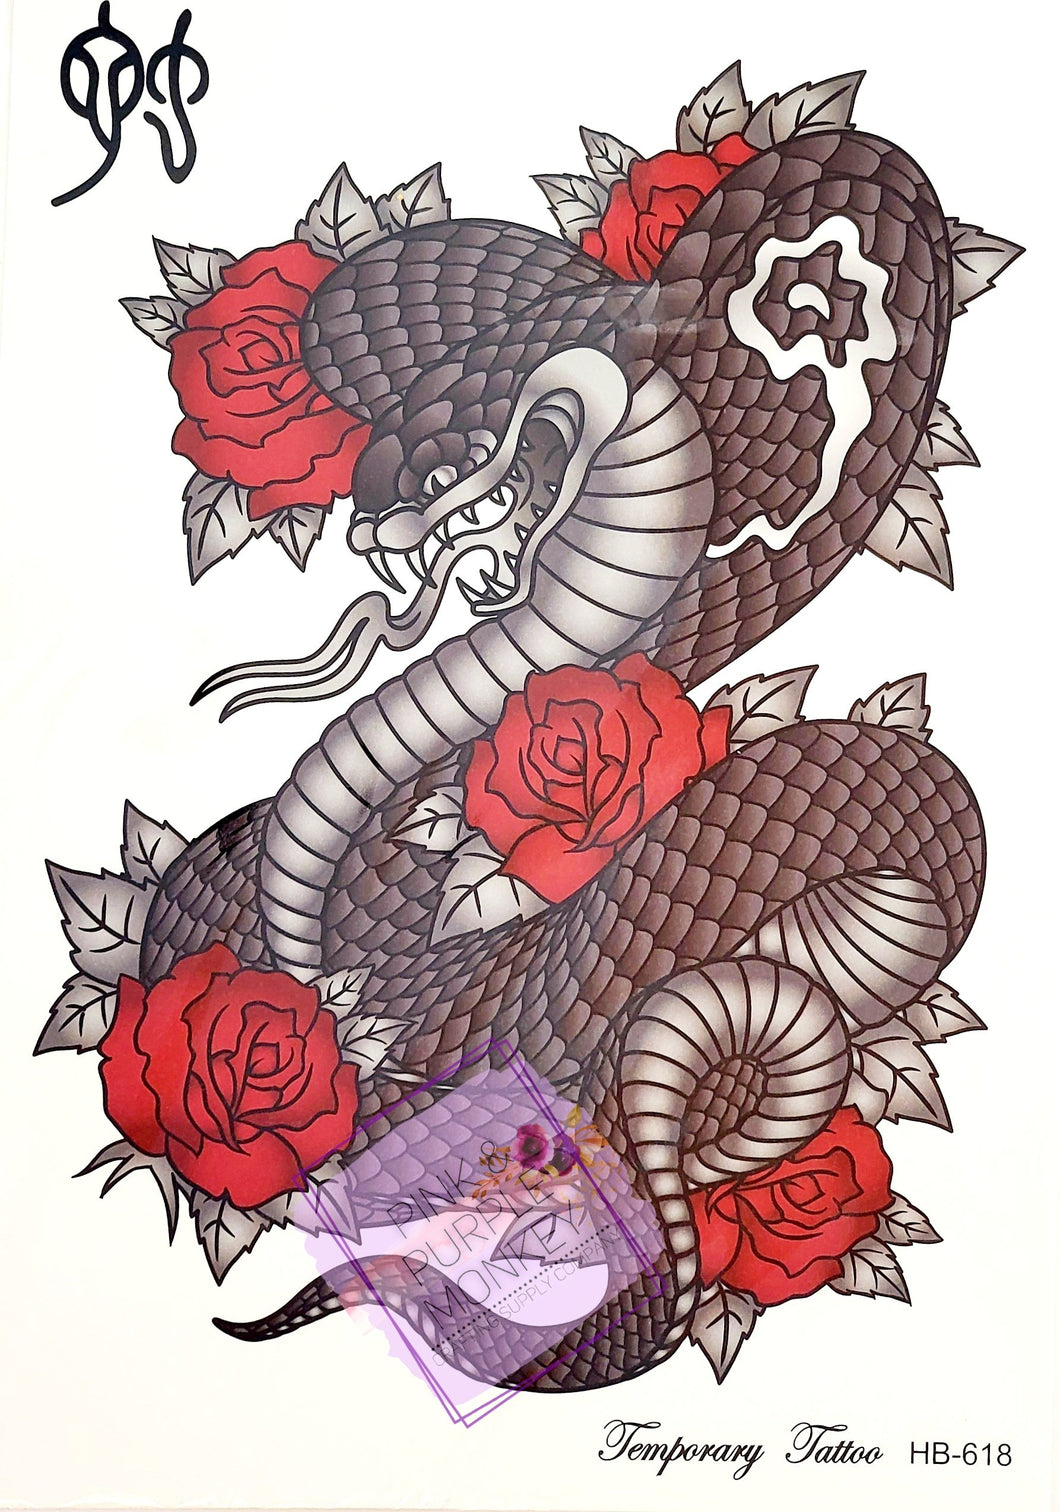 Cobra with Roses Tattoo - 8 x 5